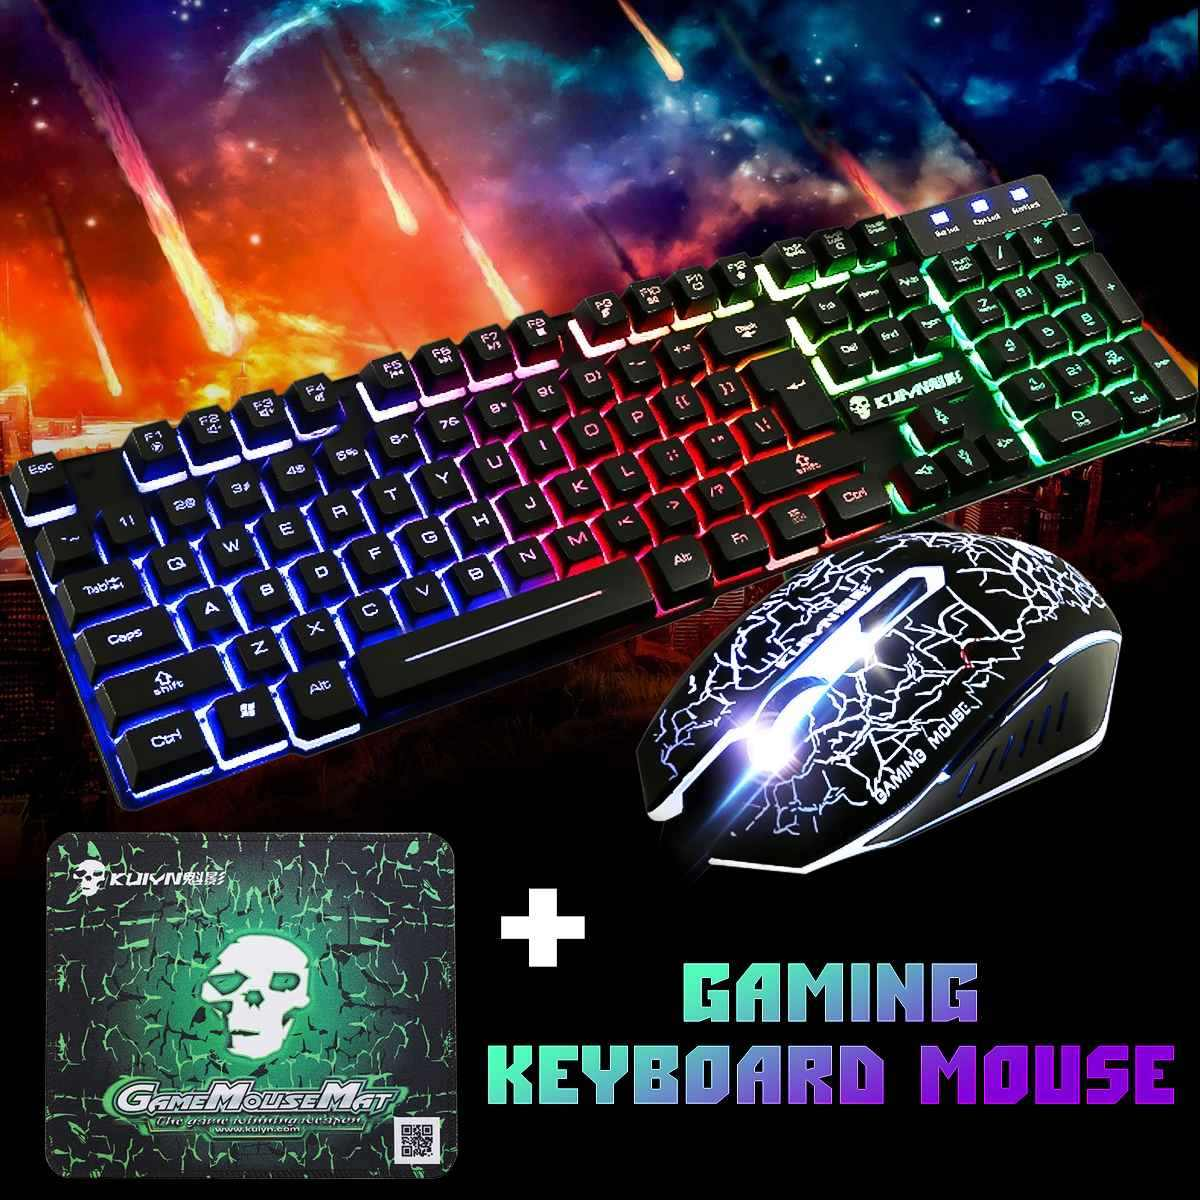 Led Regenboog Backlight Usb Ergonomische Bedrade Gaming Toetsenbord + 2400Dpi Muis + Muismat Set Kit Voor Pc Laptop computer Gamer